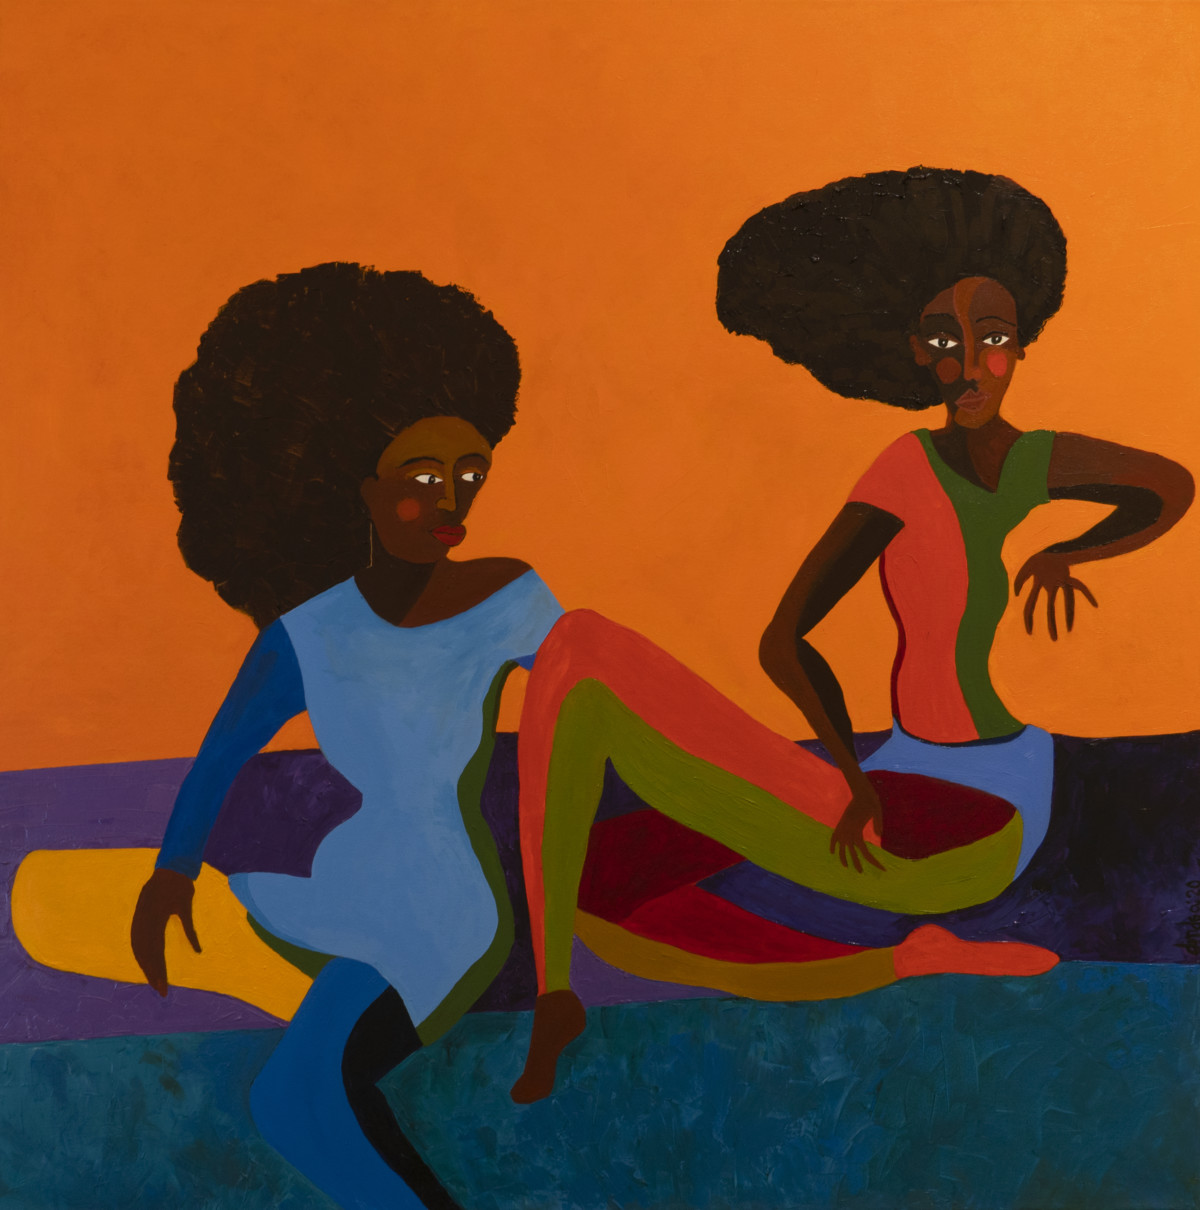 A colorful figurative painting features two dark-skinned women sitting in a relaxed manner atop a blue and purple floor. They both have large afros and wear color-blocked outfits: the woman on the left a blue and green dress, and the woman on the right a peach and green shirt and pant set. The painting's background is a bright orange.